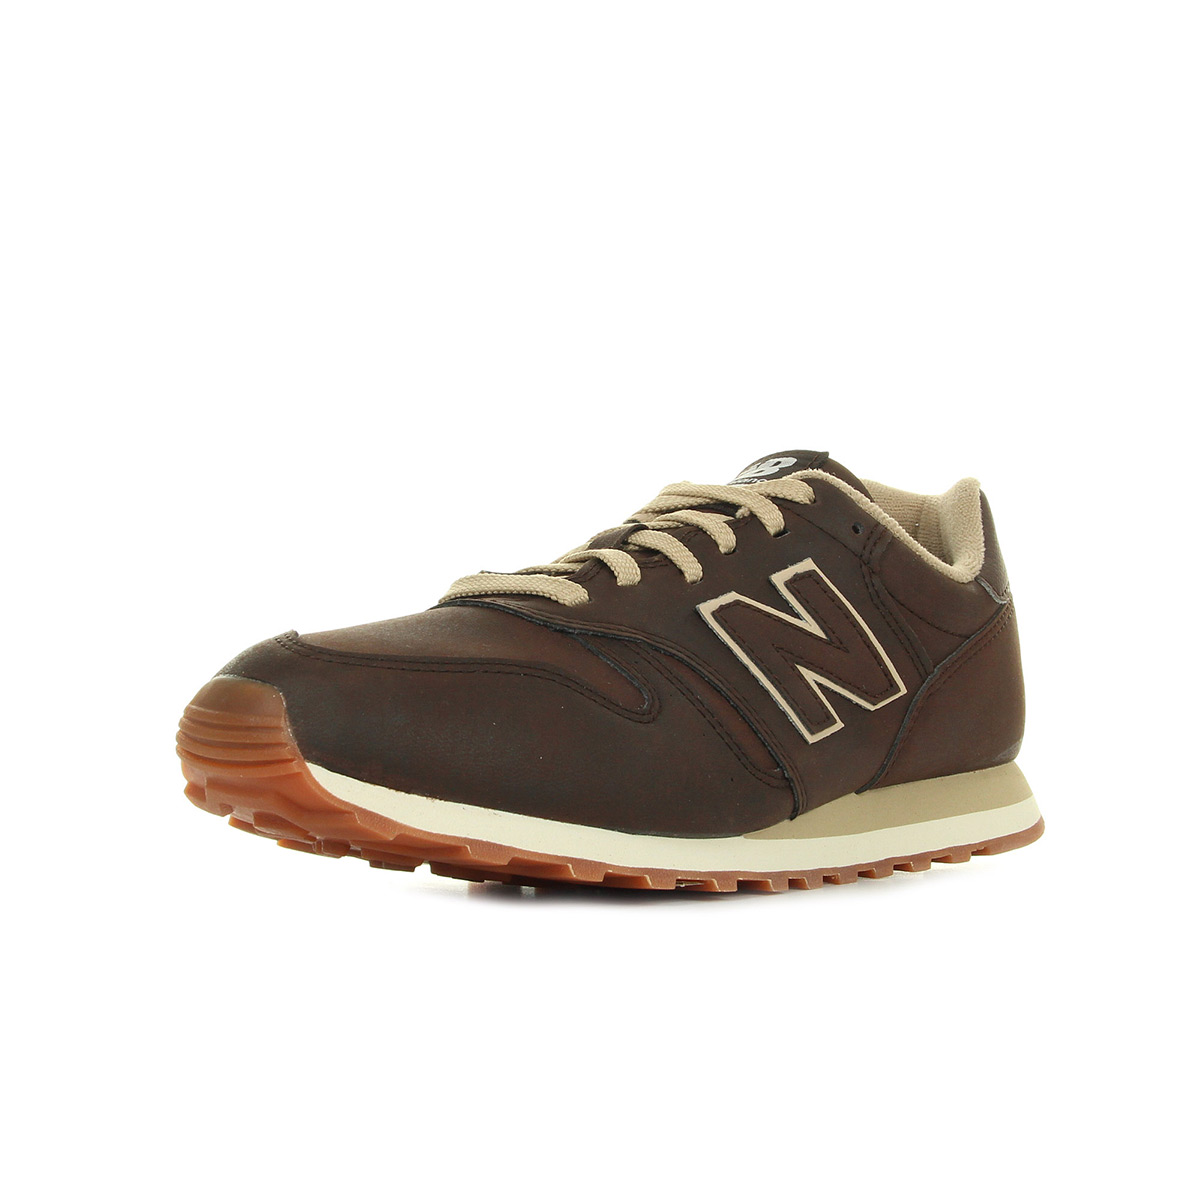 Chaussures Baskets New Balance homme ML373 BRO taille Marron Synth tique Lacets